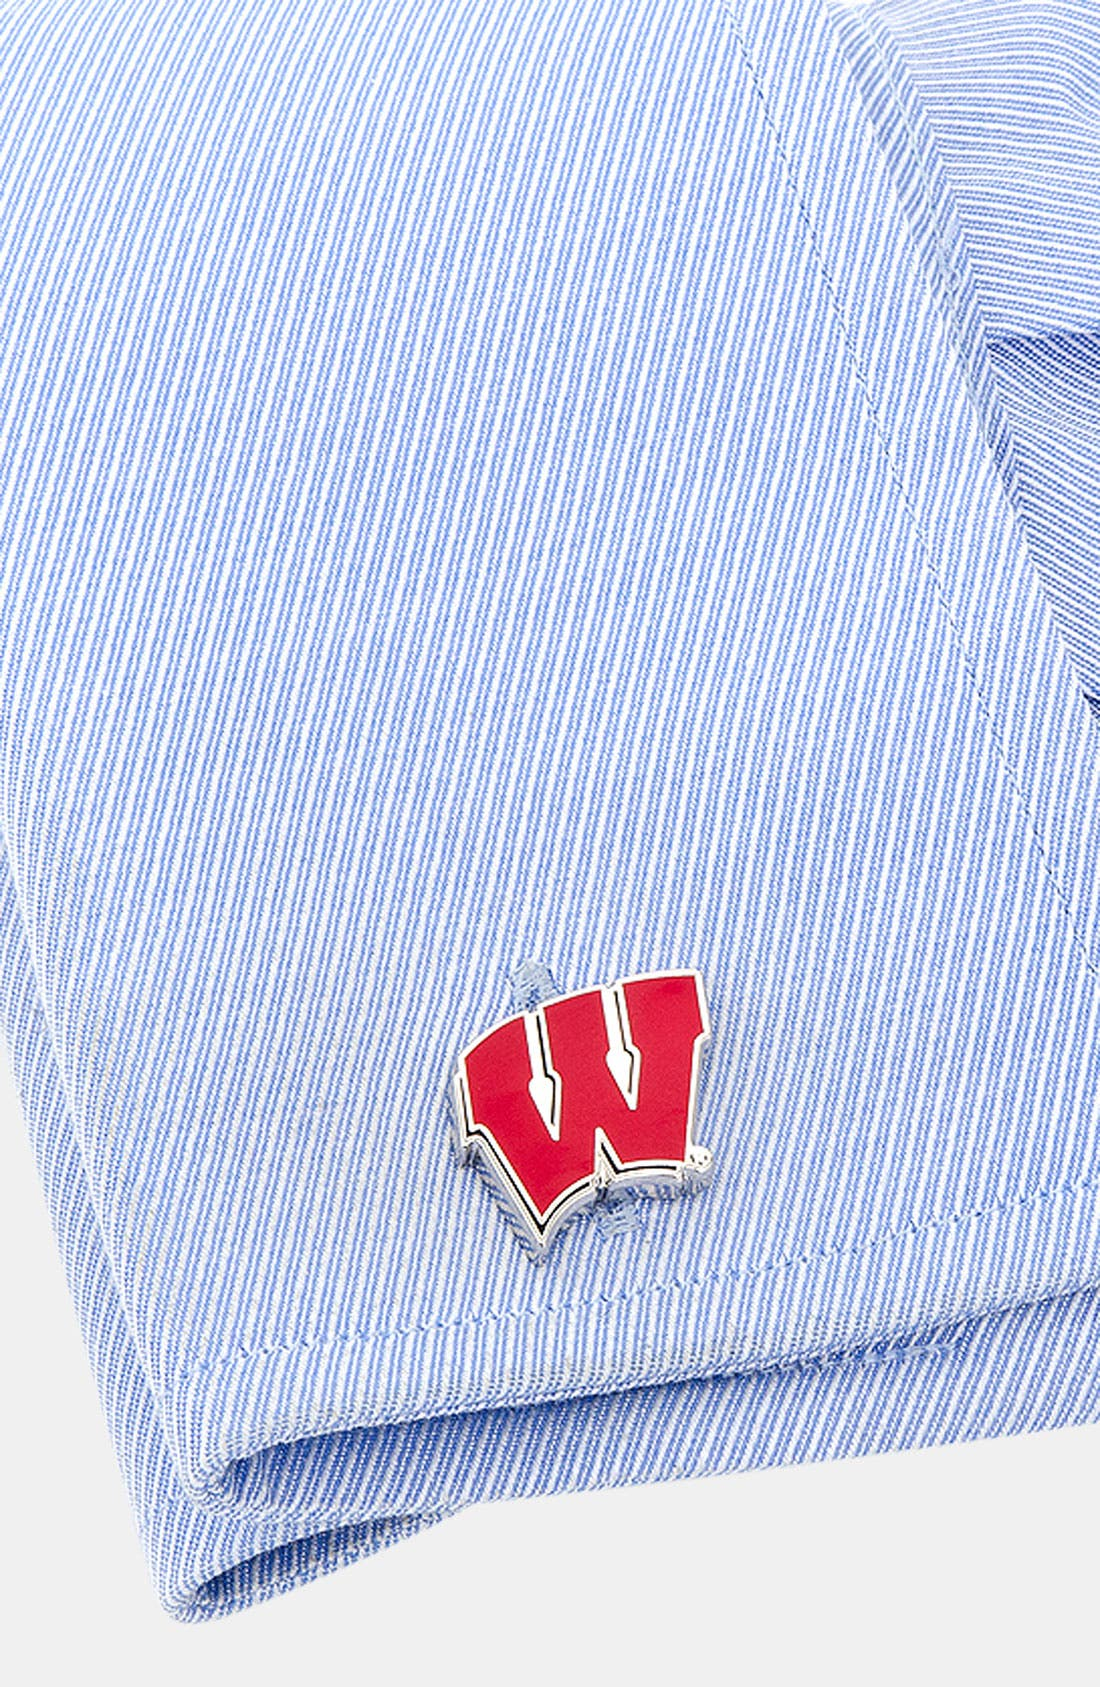 'University of Wisconsin Badgers' Cuff Links,                             Alternate thumbnail 2, color,                             600